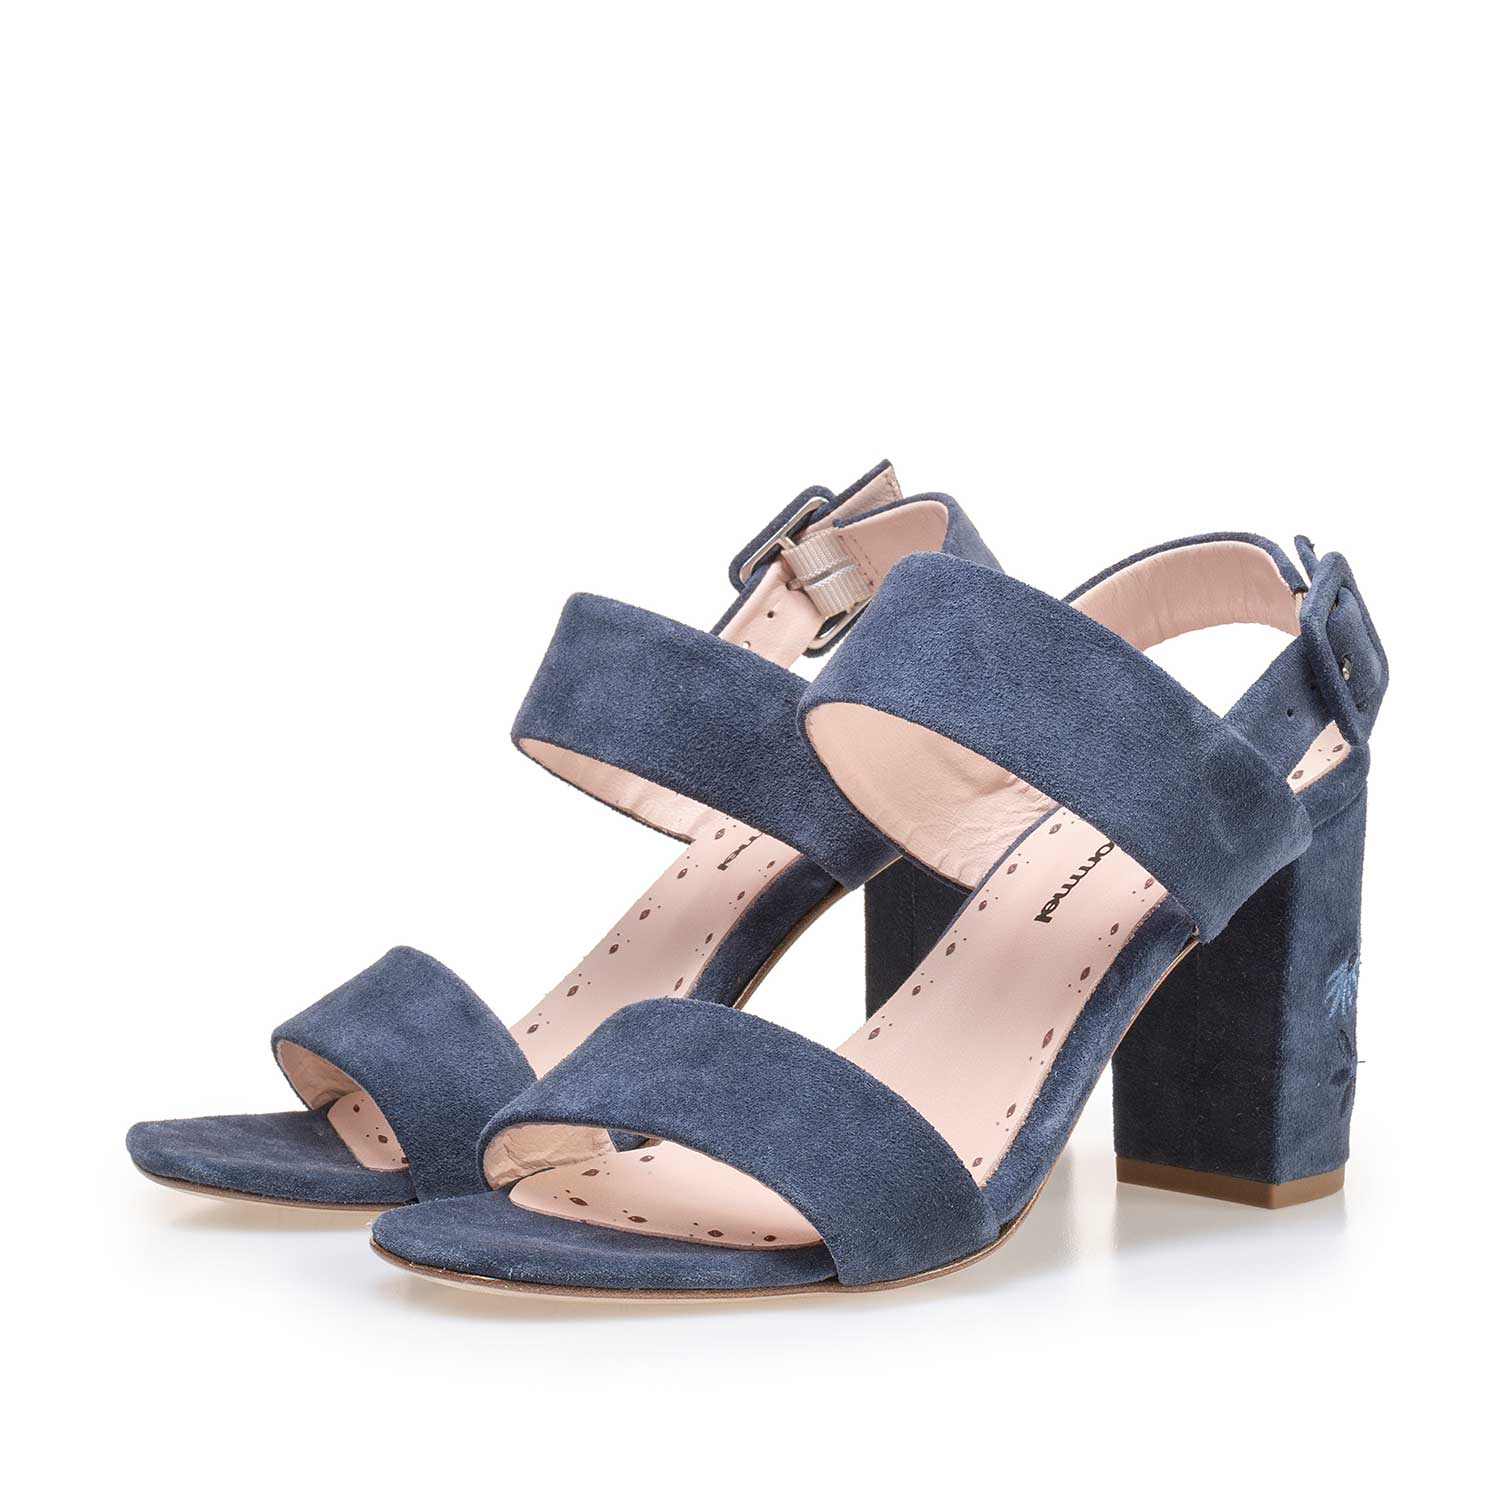 85239/00 - Denim blue calf's suede leather sandal with floral embroidery stitching